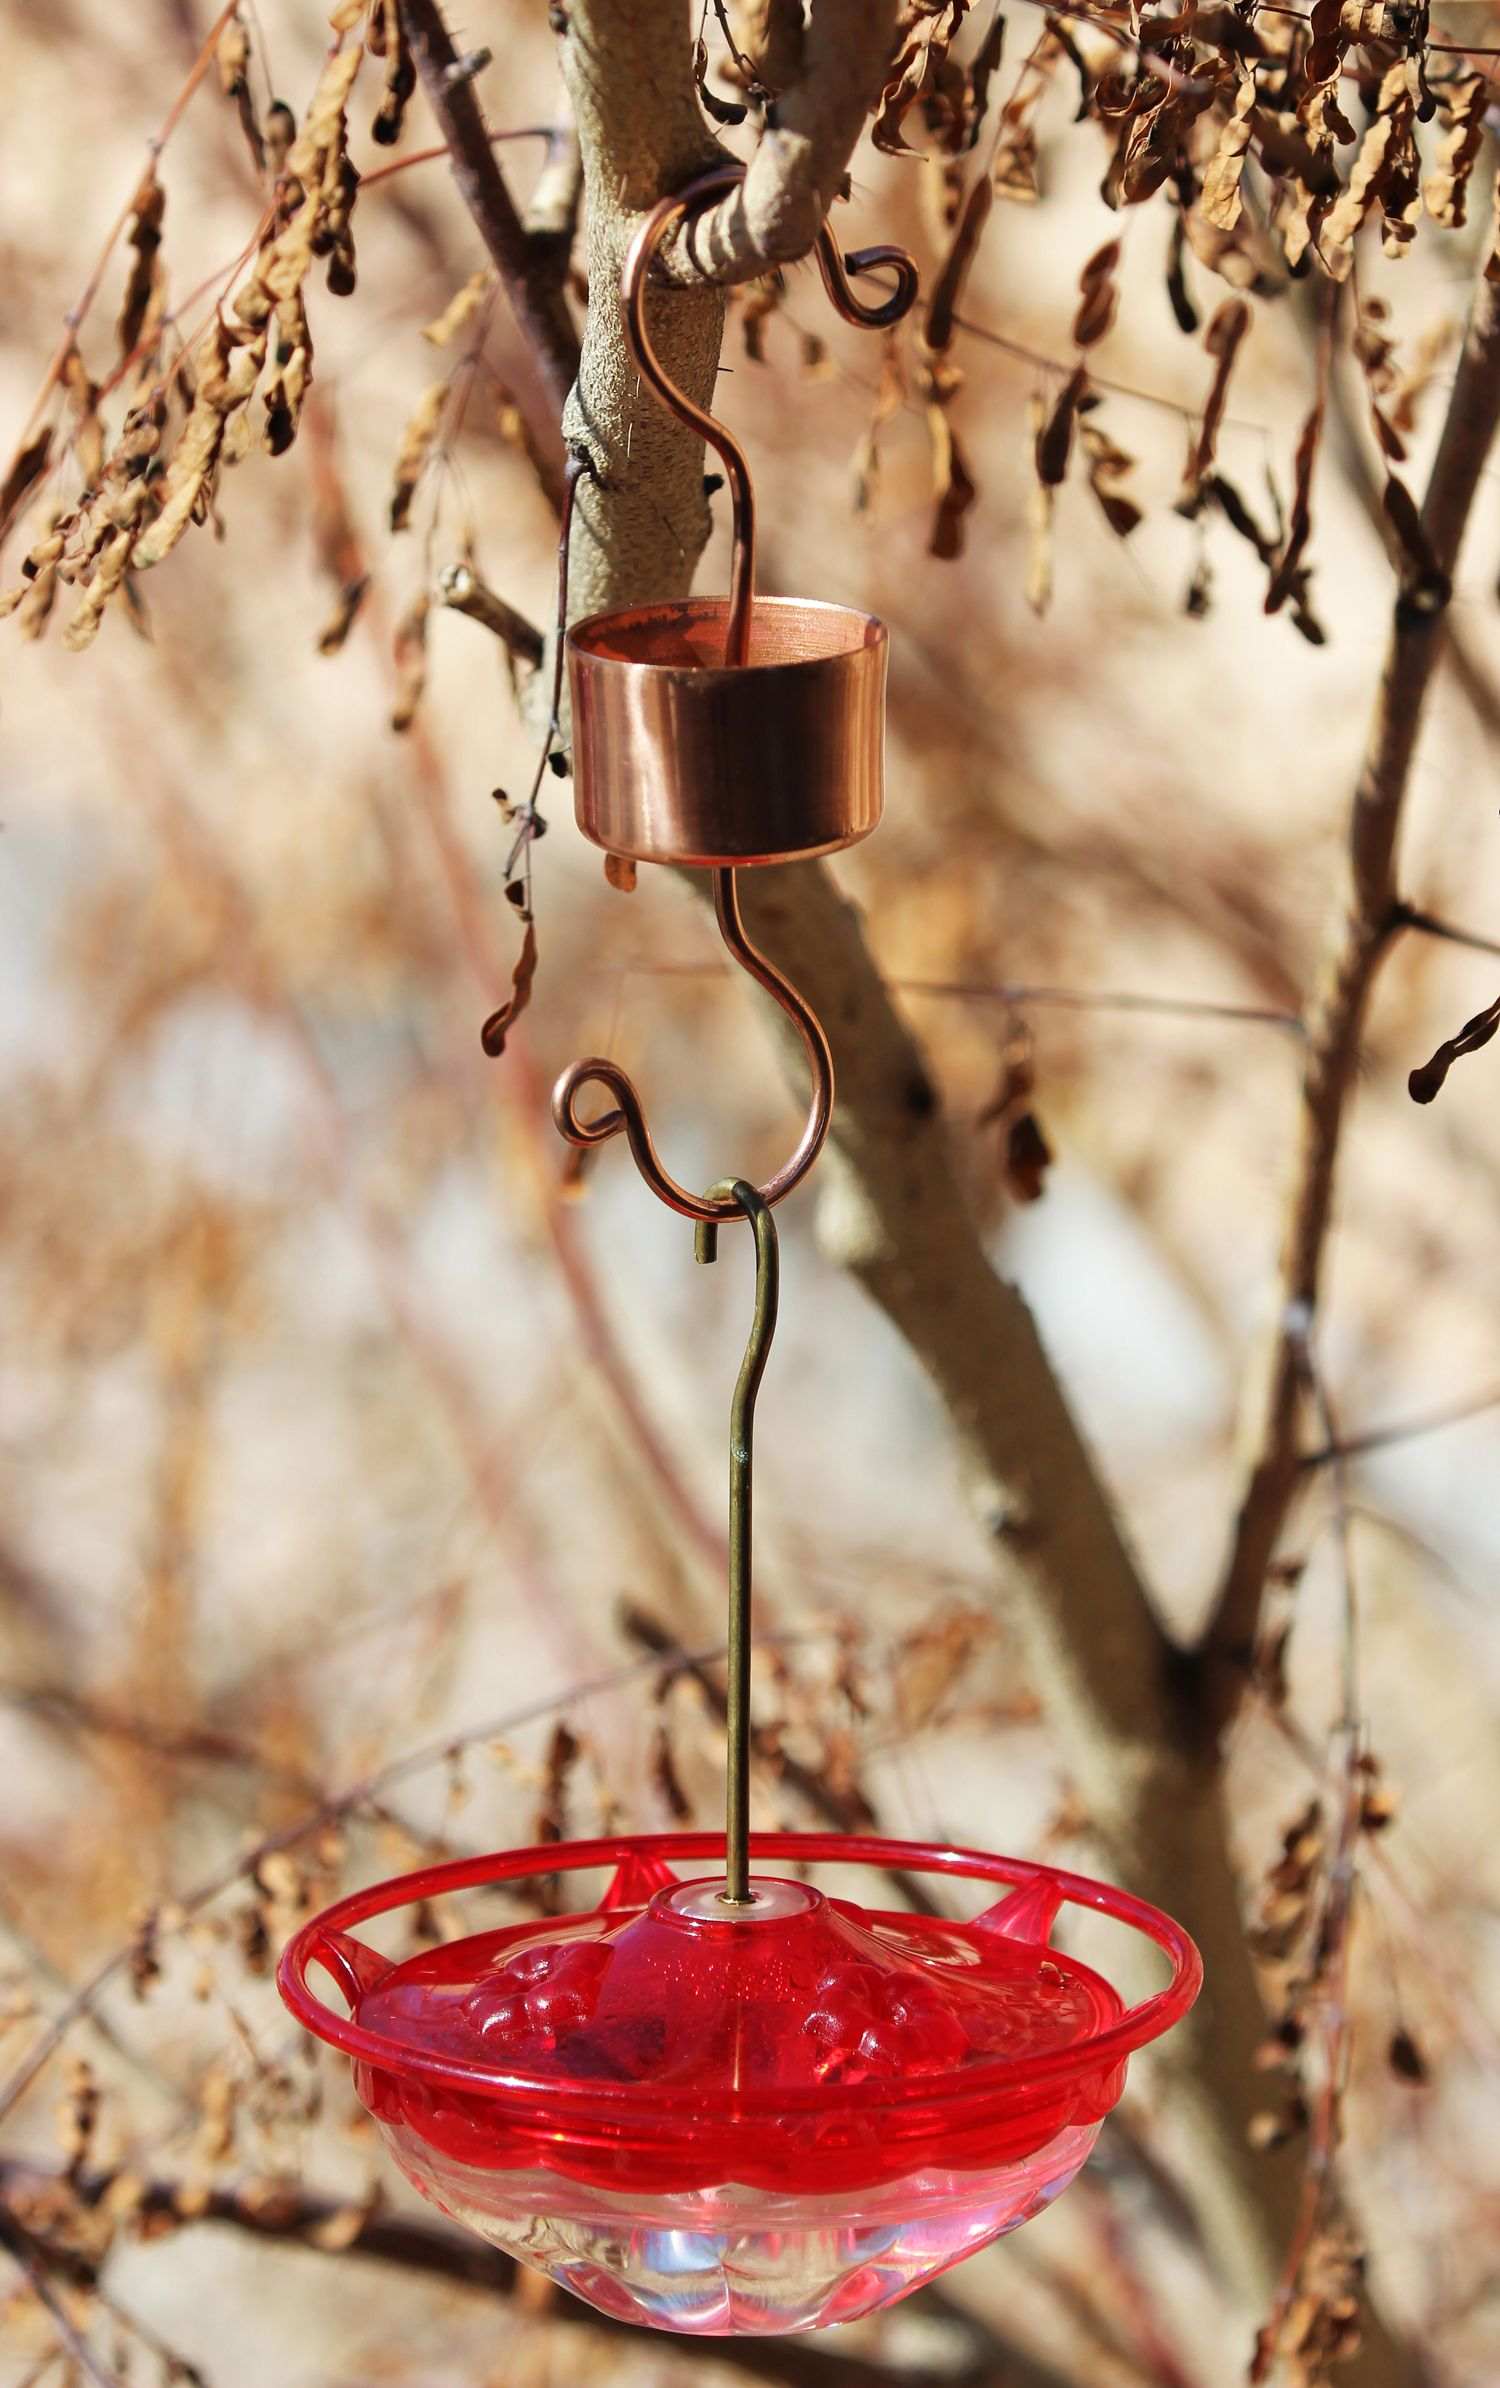 Ant Moat For Hummingbird Feeder Hairspray Cap Two Cup Hooks A Cork Put It Together Dab With Glue Humming Bird Feeders Bird House Feeder Bird House Kits